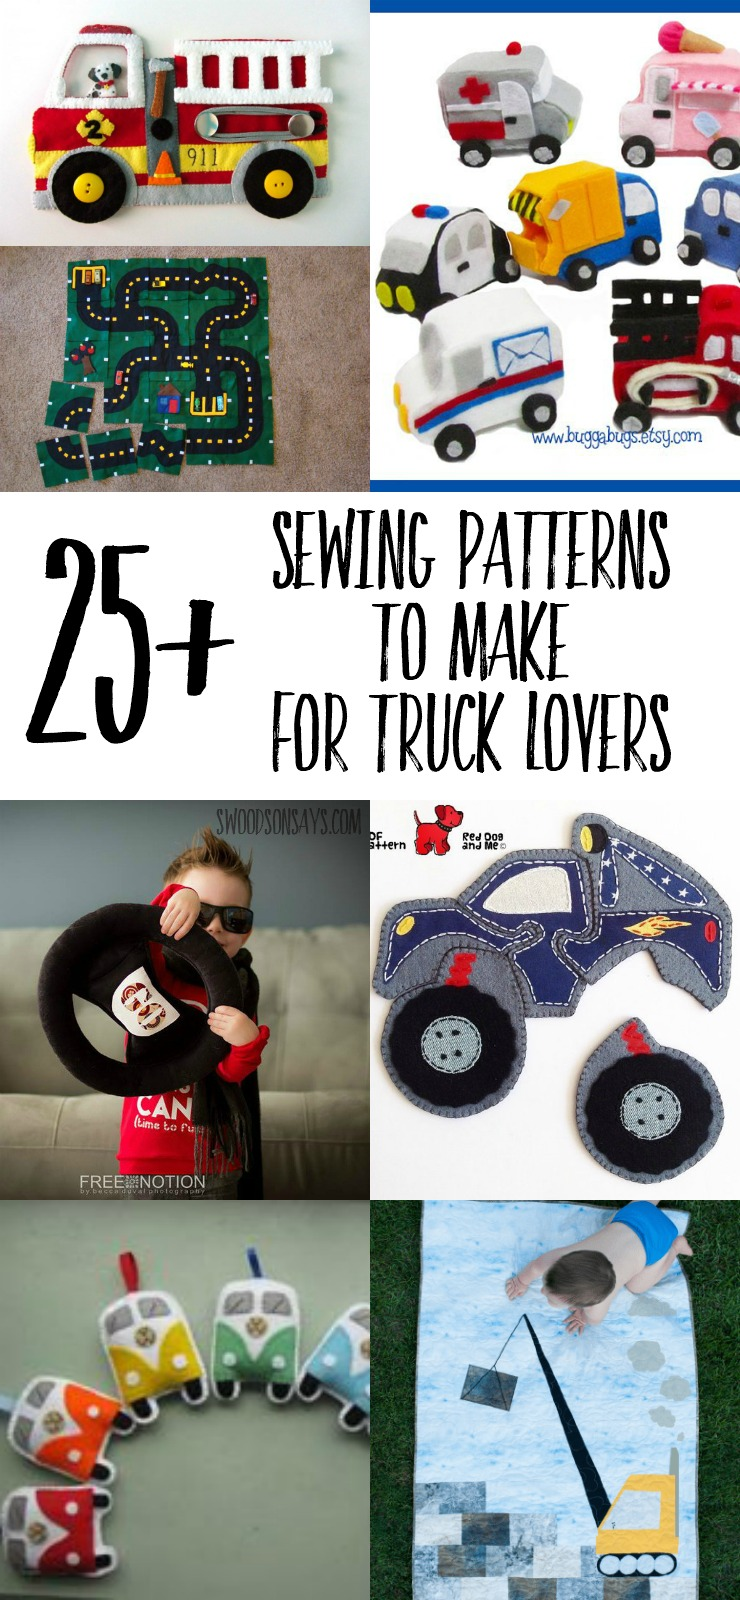 Check out over 25 ideas of what to sew for kids who love trucks! Stuffed trucks, truck quilts, truck shirts, and truck play mats are all included in this roundup of sewing projects for kids. #sewingforkids #trucks